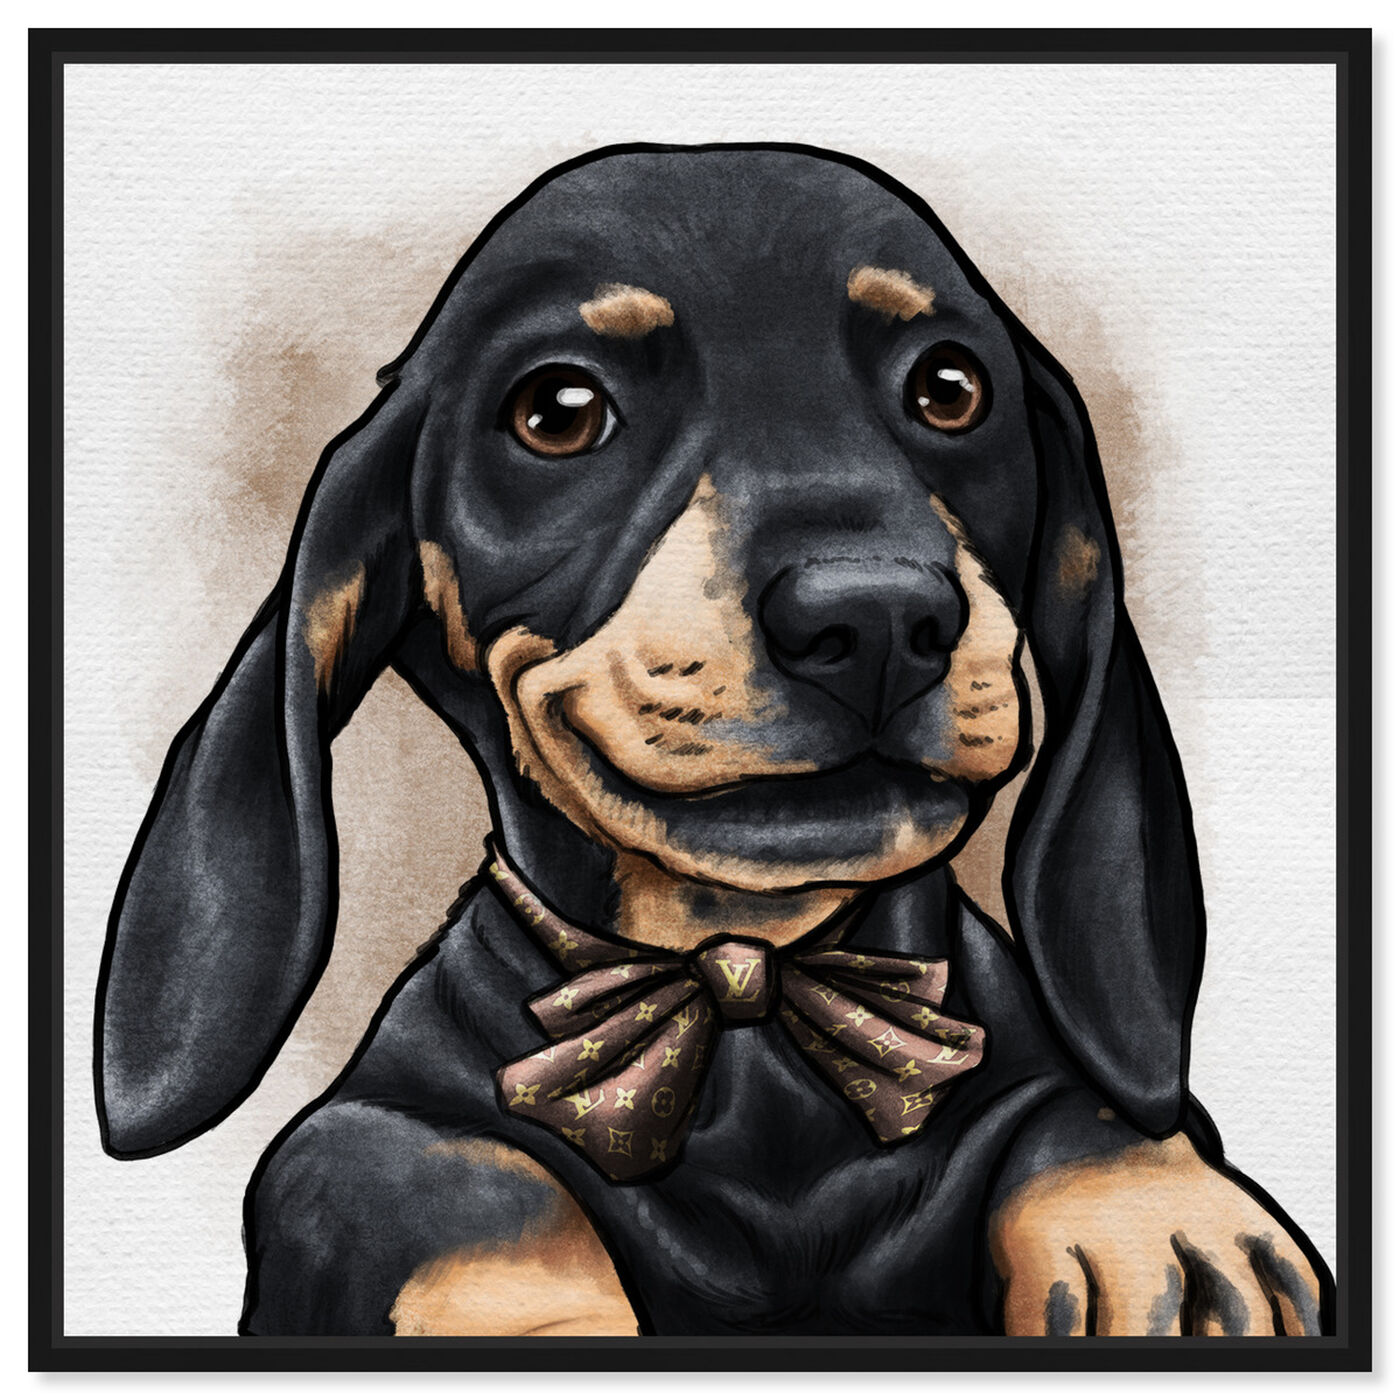 Front view of Dapper Dachshund featuring animals and dogs and puppies art.